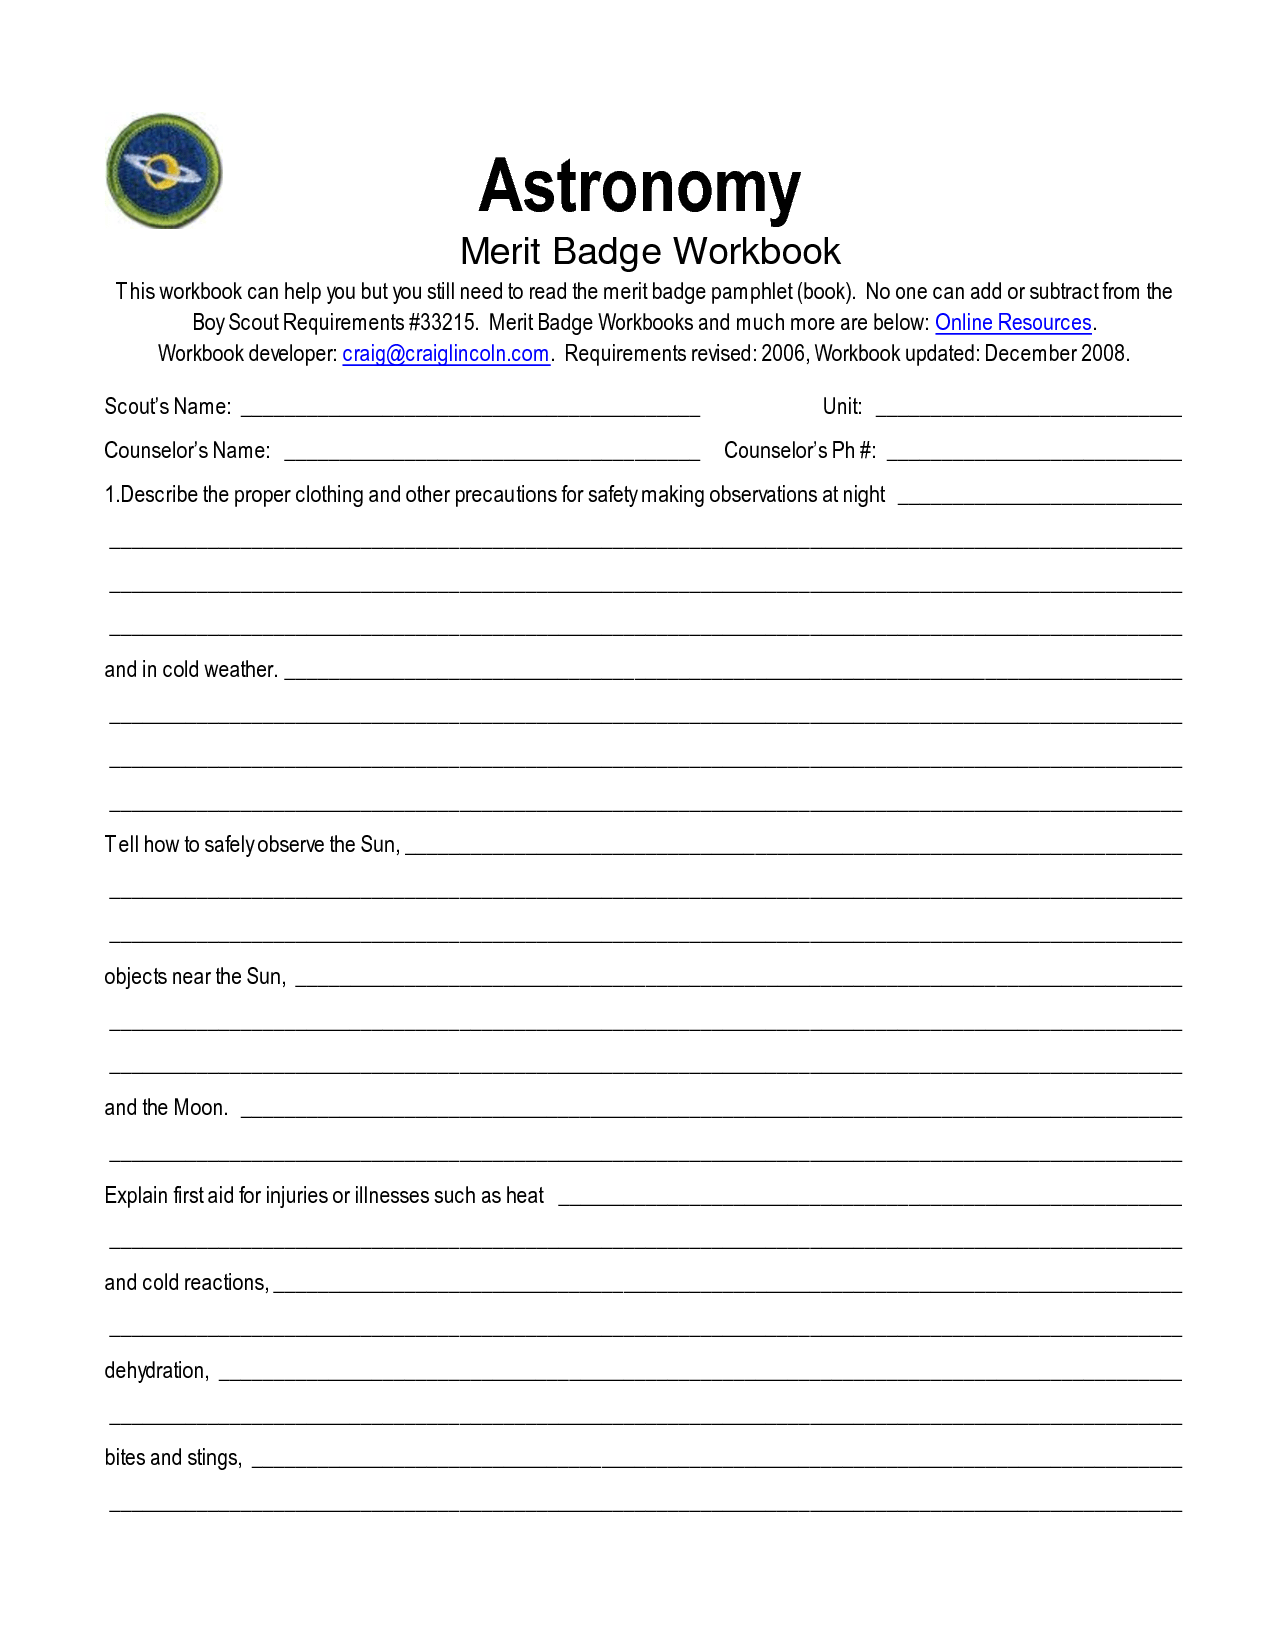 Galaxy Astronomy Worksheet